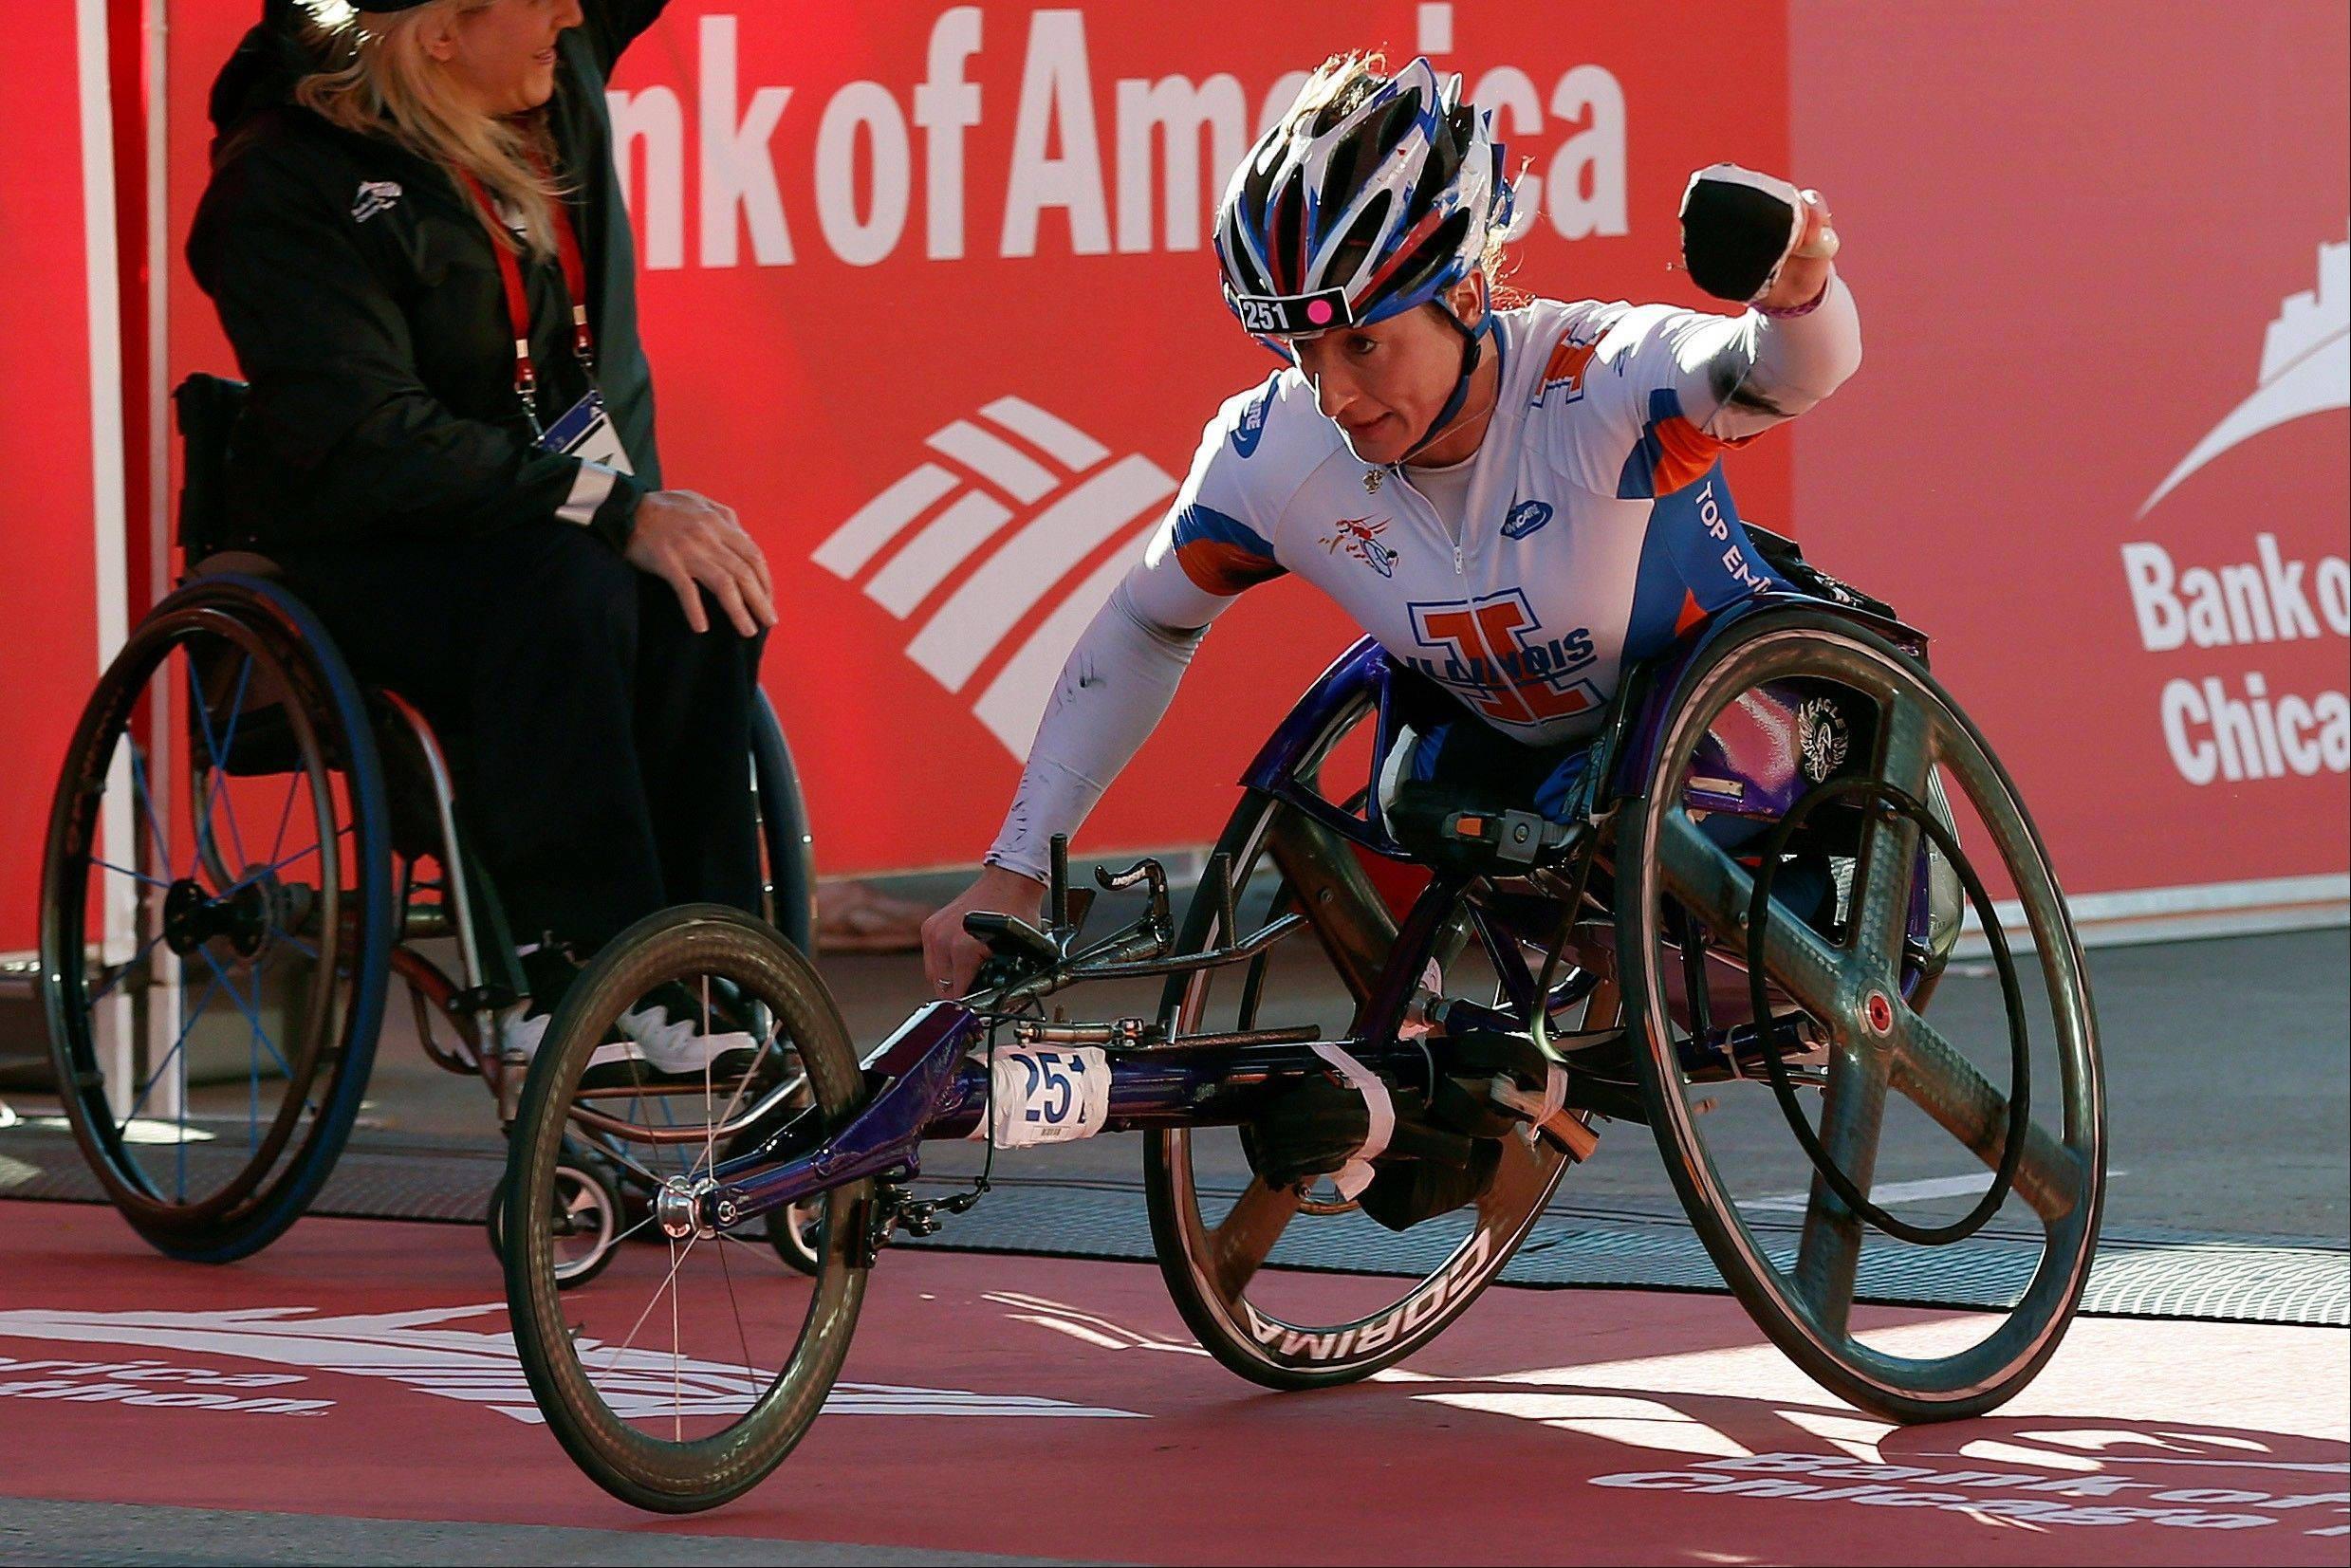 Tatyana McFadden, of Champaign, Ill., wins the woman's wheelchair division during the Chicago Marathon on Sunday, Oct. 13, 2013, in Chicago.